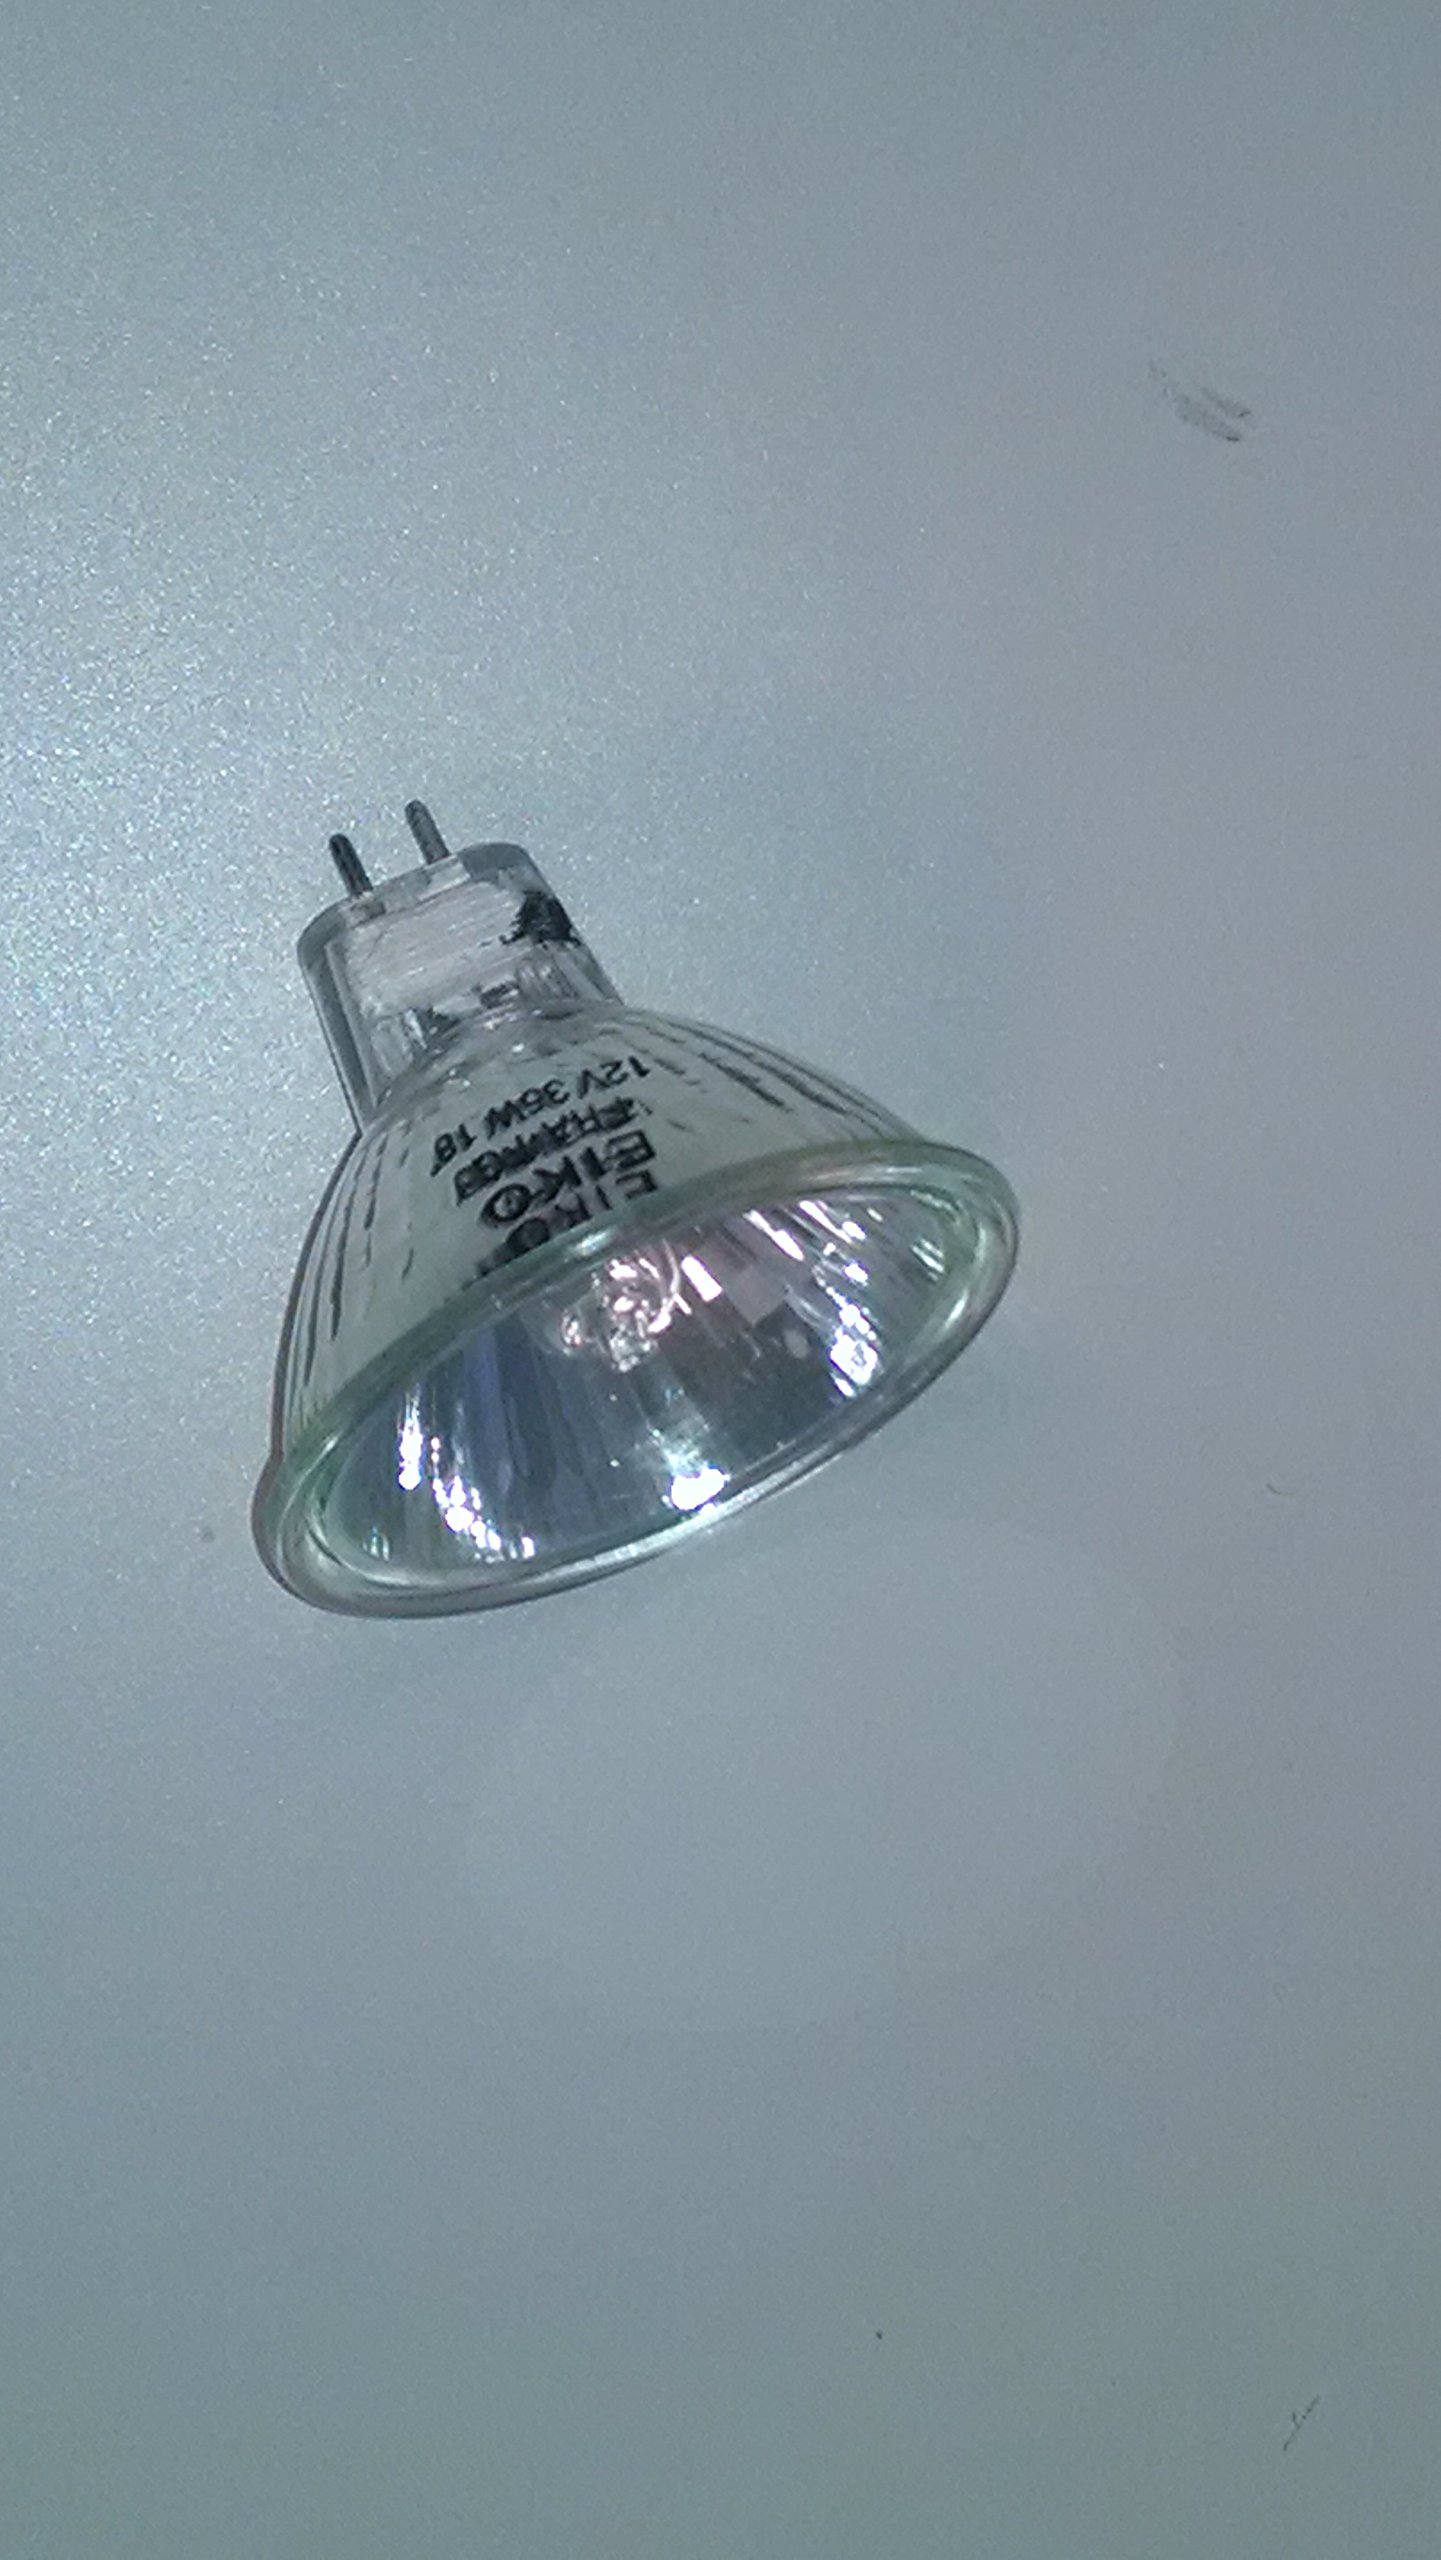 Moore Medical Halogen 35 Exam Lamp Replacement Bulb - Each